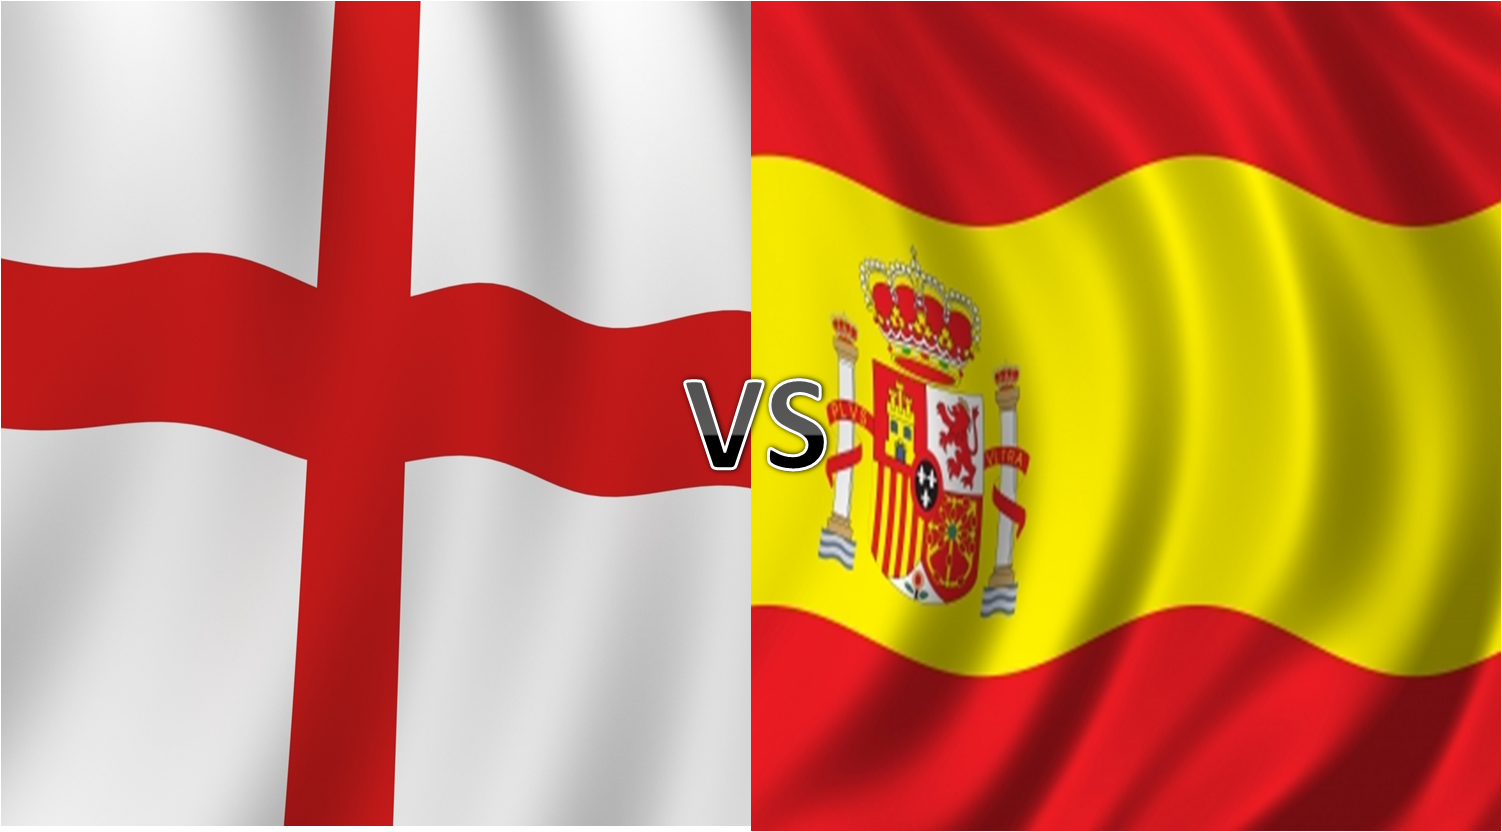 spain vs england - photo #13